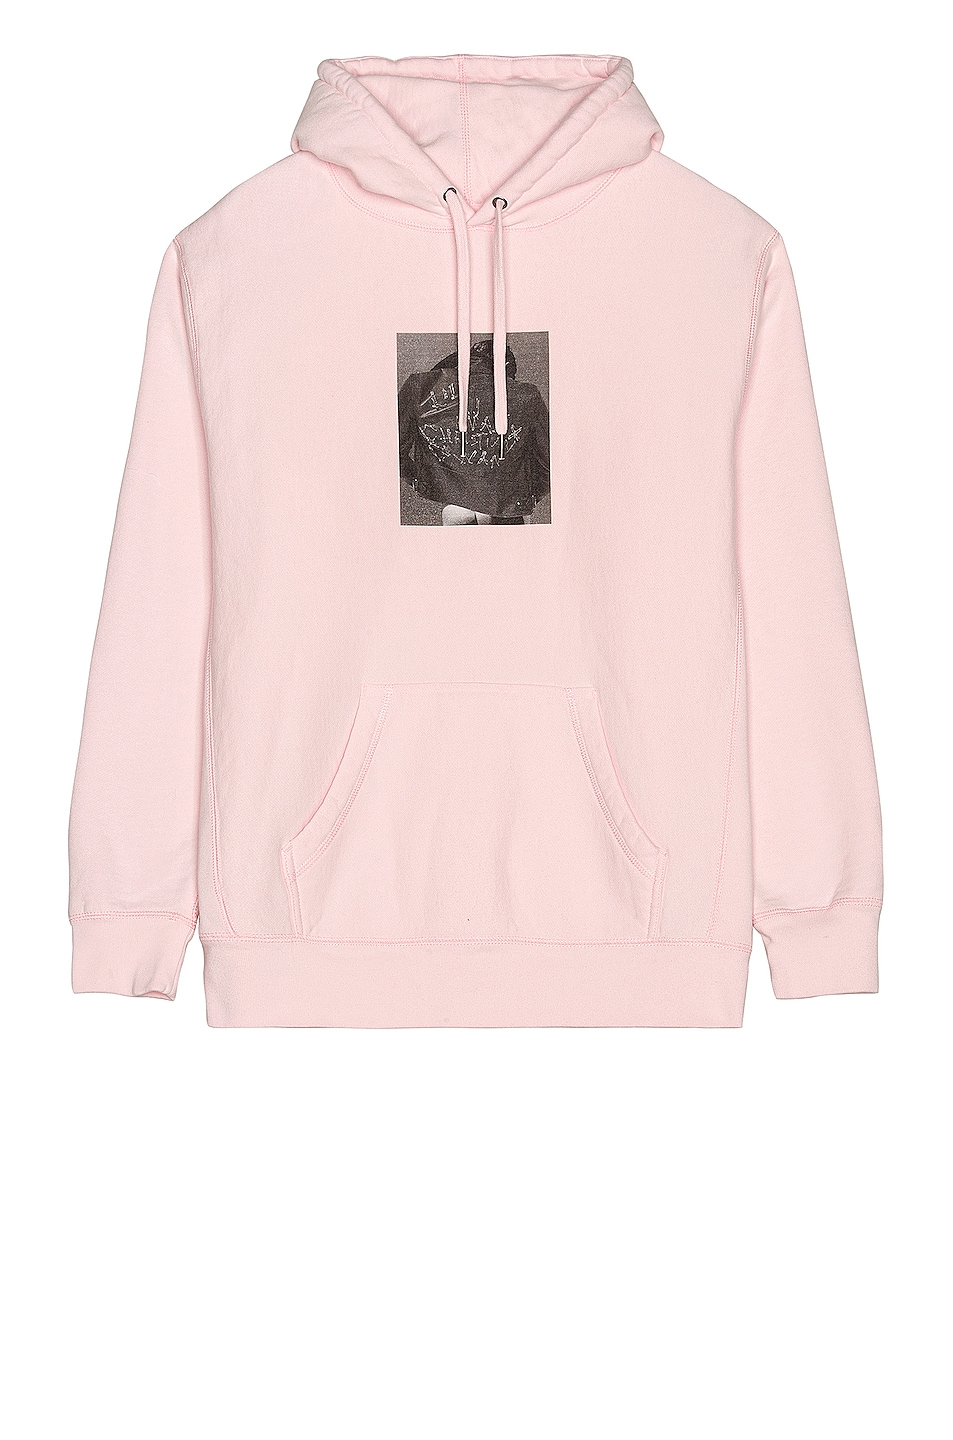 Image 1 of CHRISTIAN COWAN x Lil Nas Graphic Sweatshirt in Pink 3